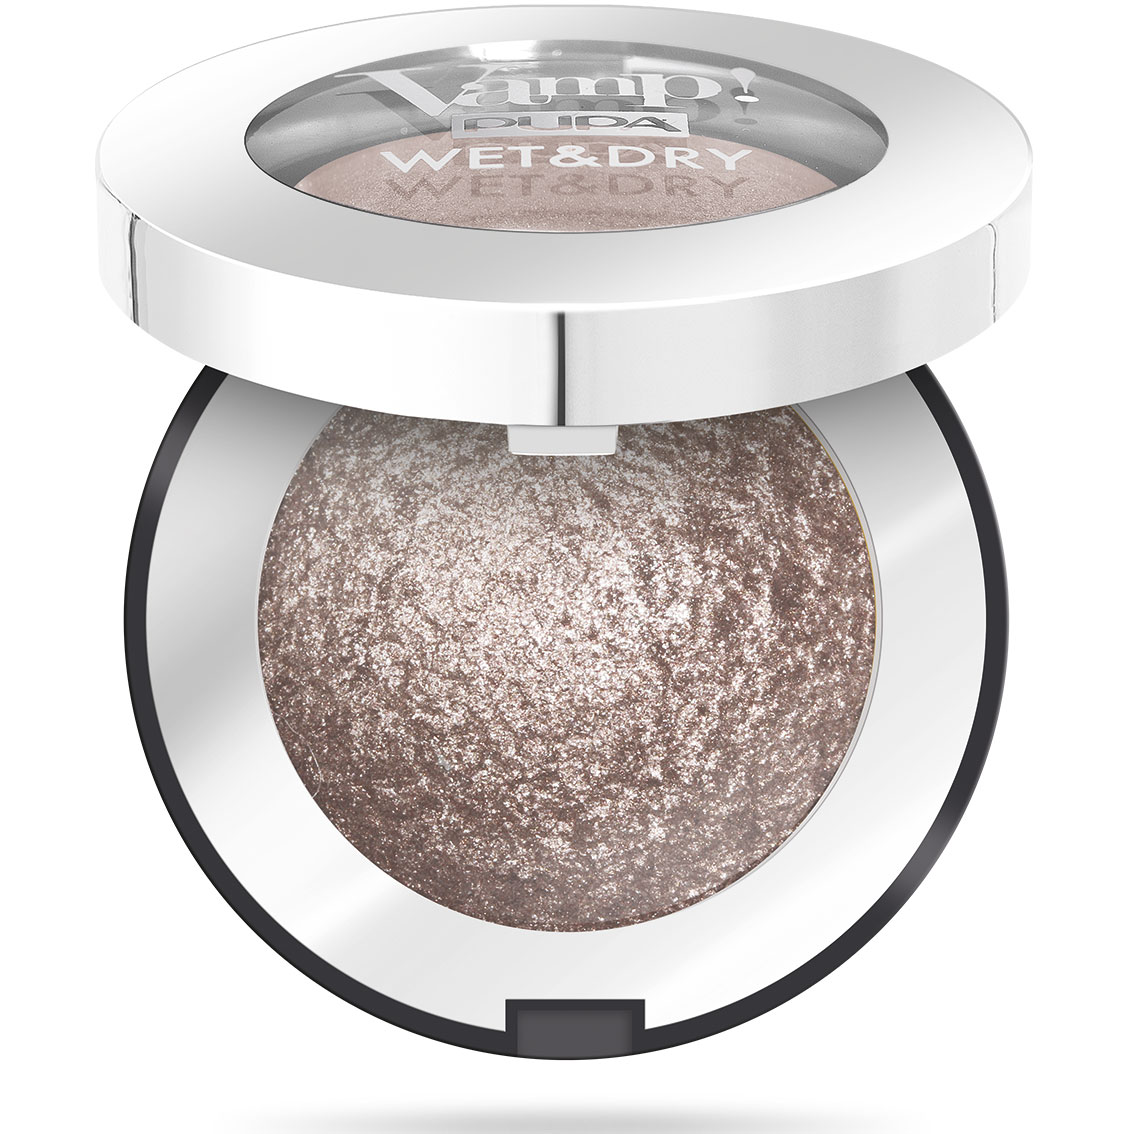 Pupa Vamp! Wet & Dry Ombretto n. 301 cold taupe